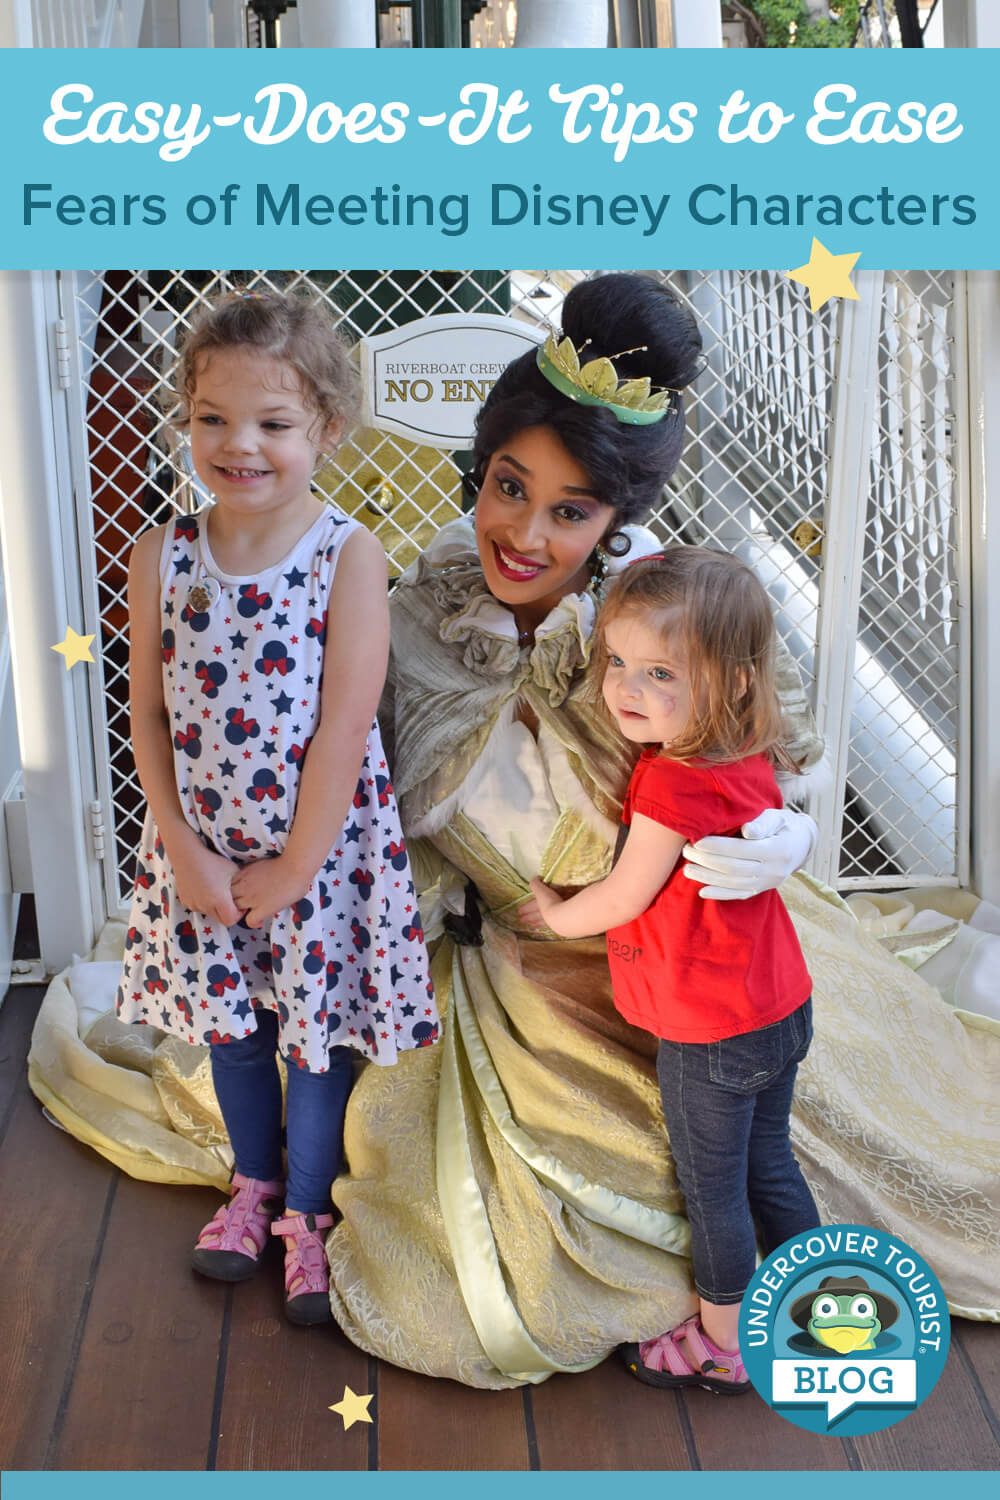 Easy-Does-It Tips to Help a Child Afraid of Disney Characters - Tiana